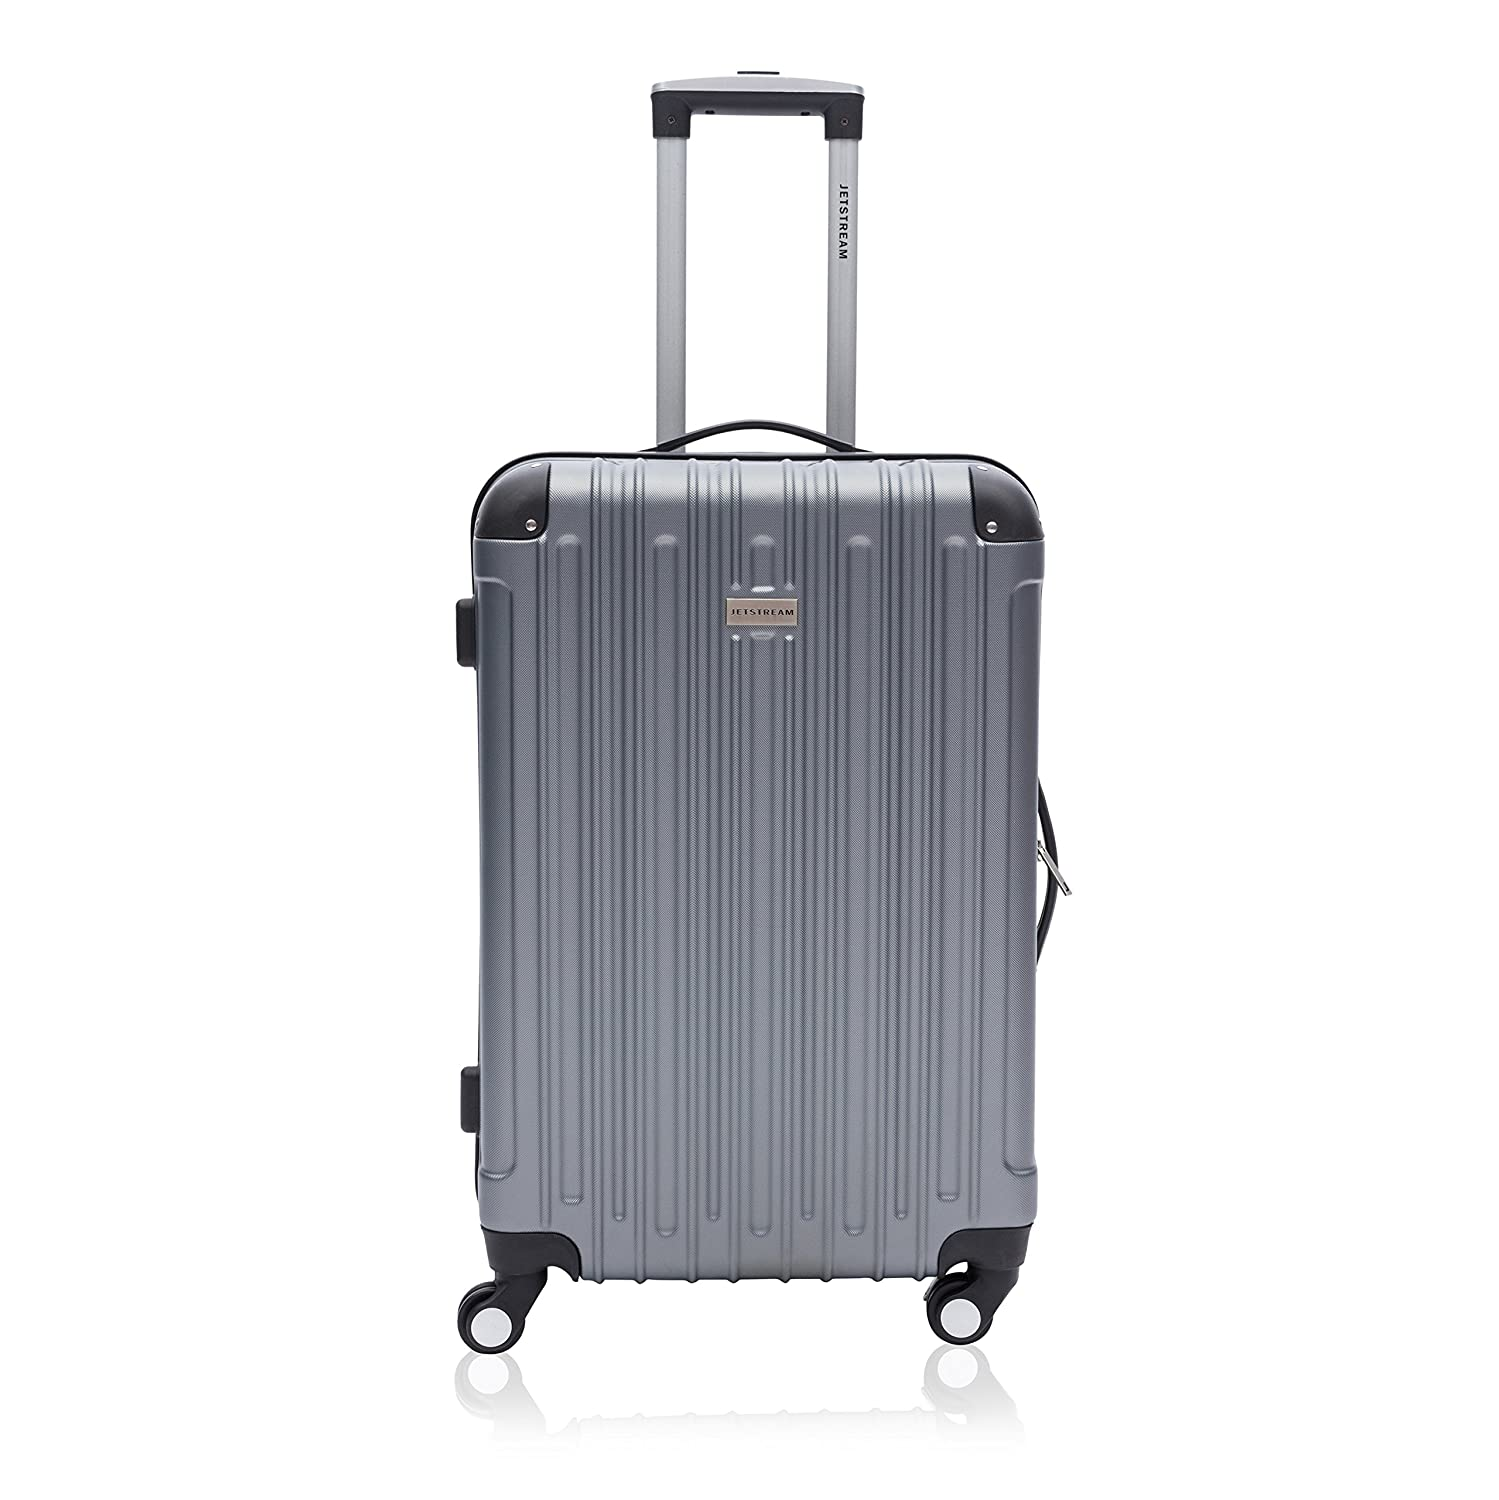 Jetstream 24 Hardside Spinner Suitcase (Charcoal) C0665_24_CHR